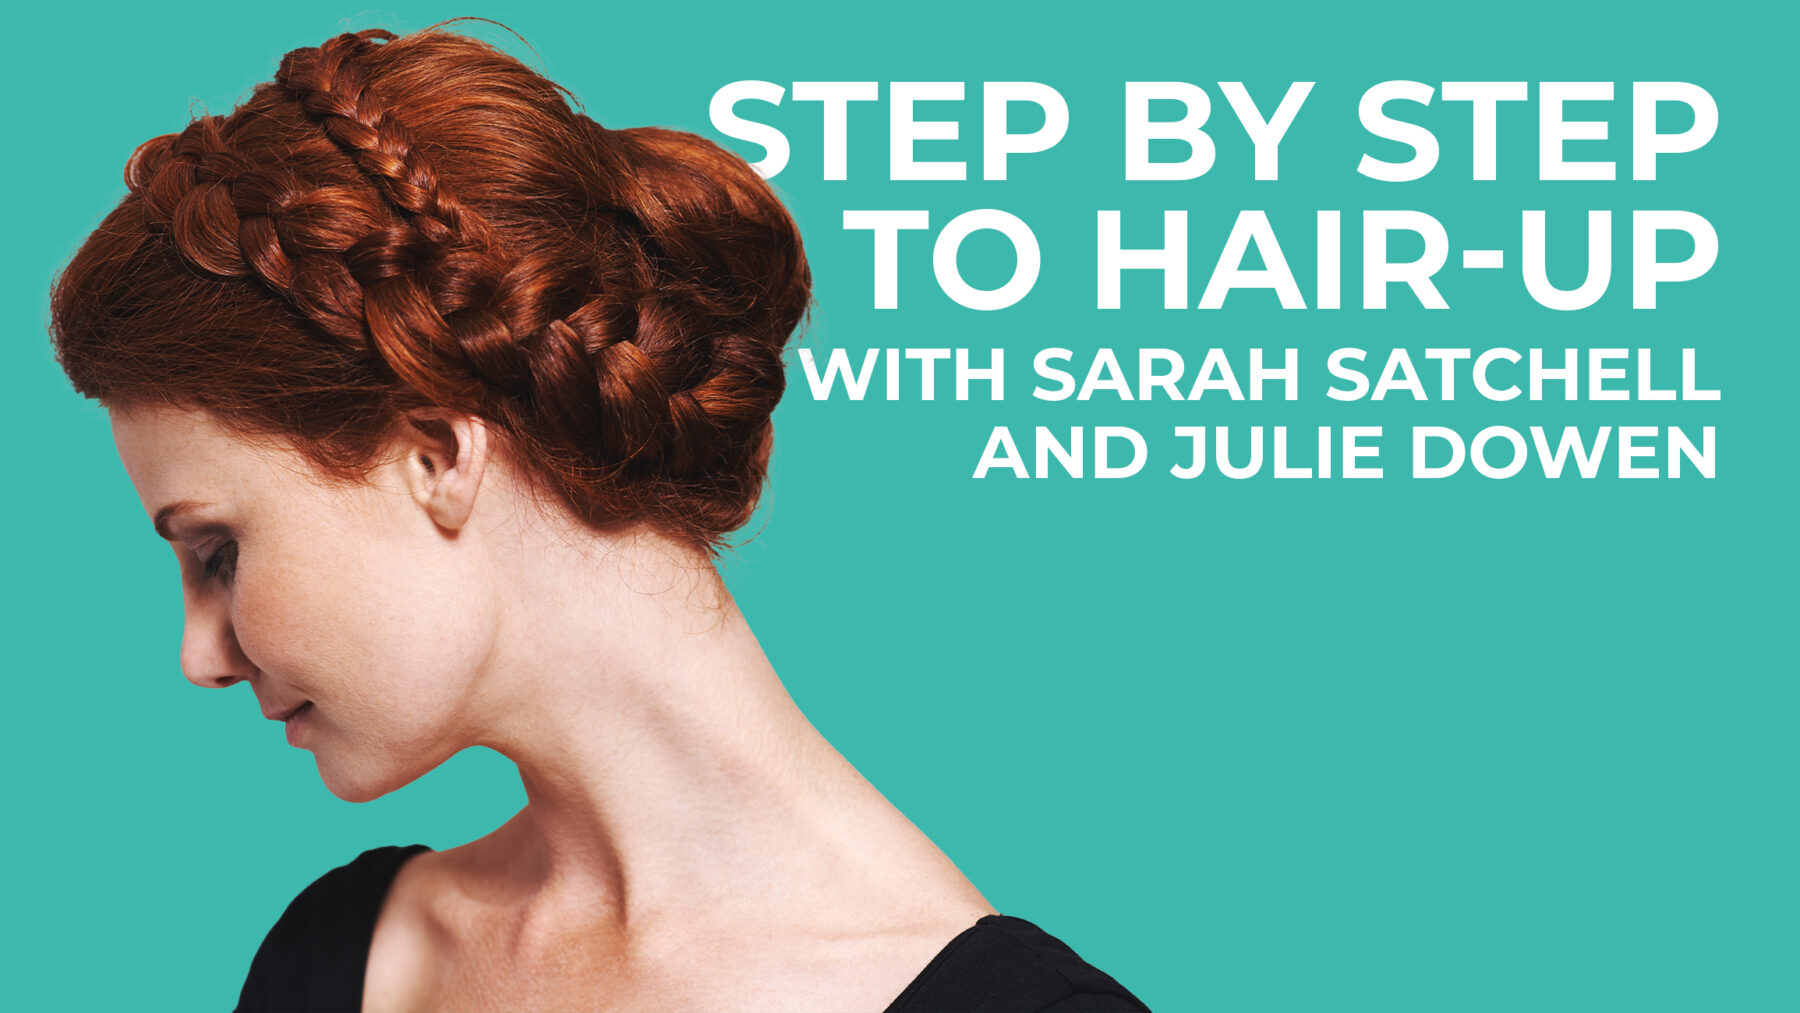 Step by Step to Hair-up